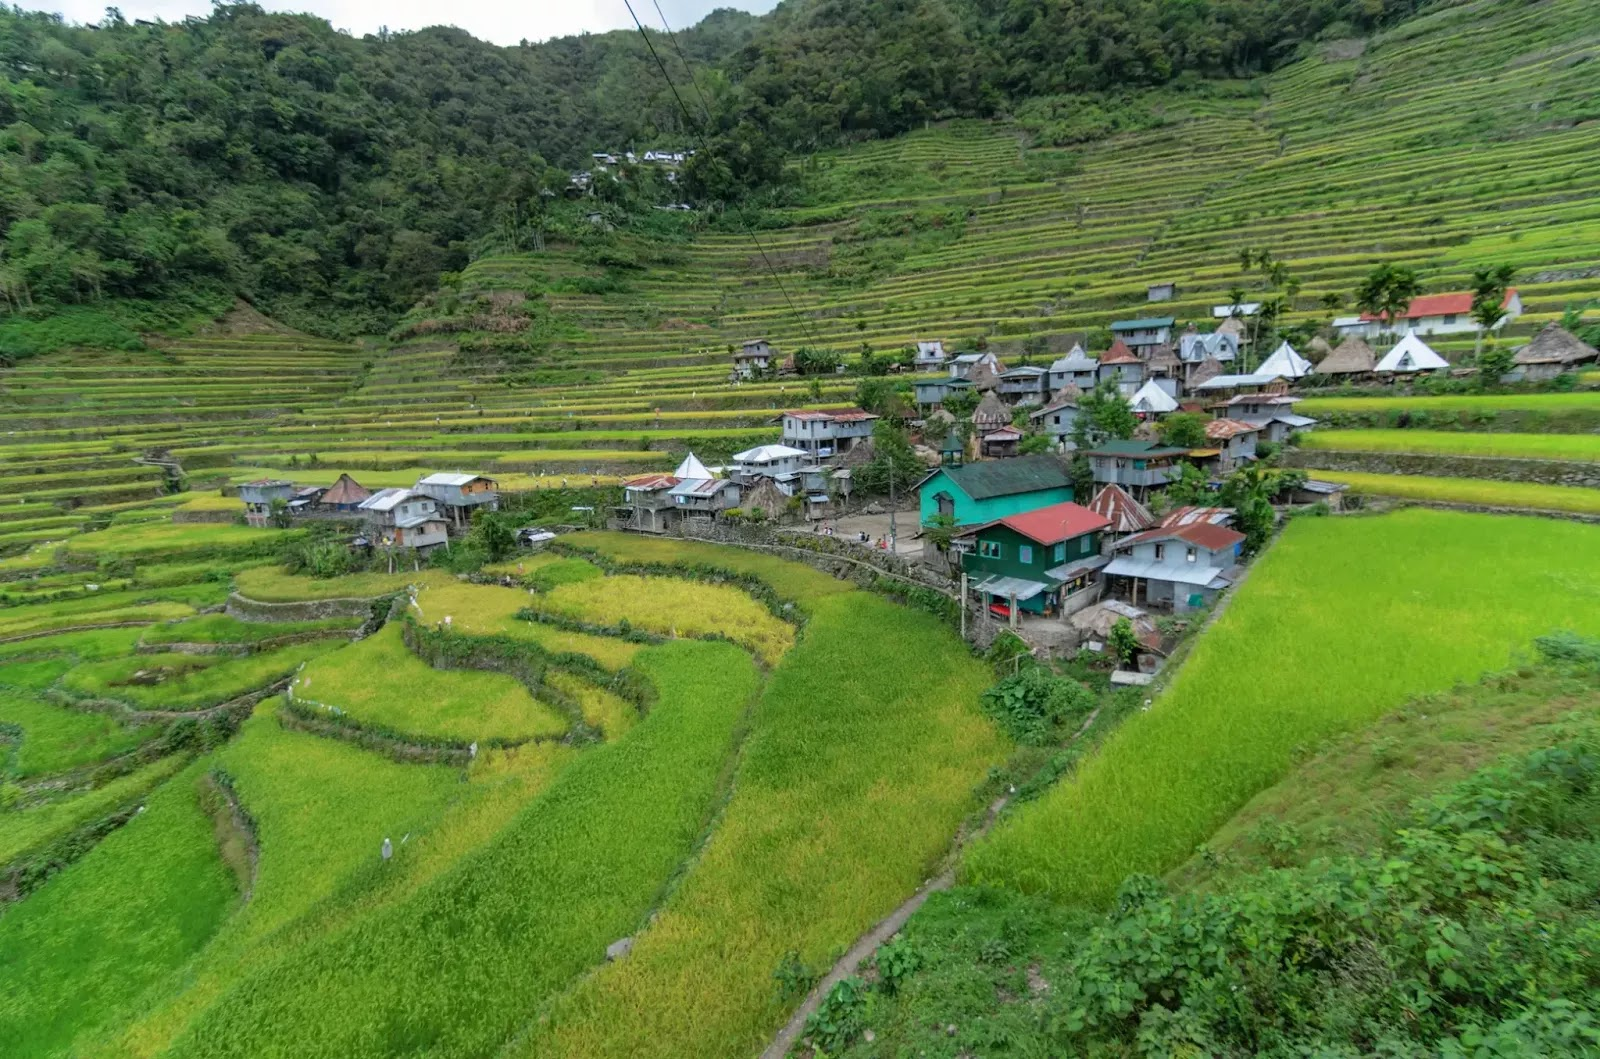 Community Home Cluster Batad Rice Terraces Ifugao Cordillera Administrative Region Philippines